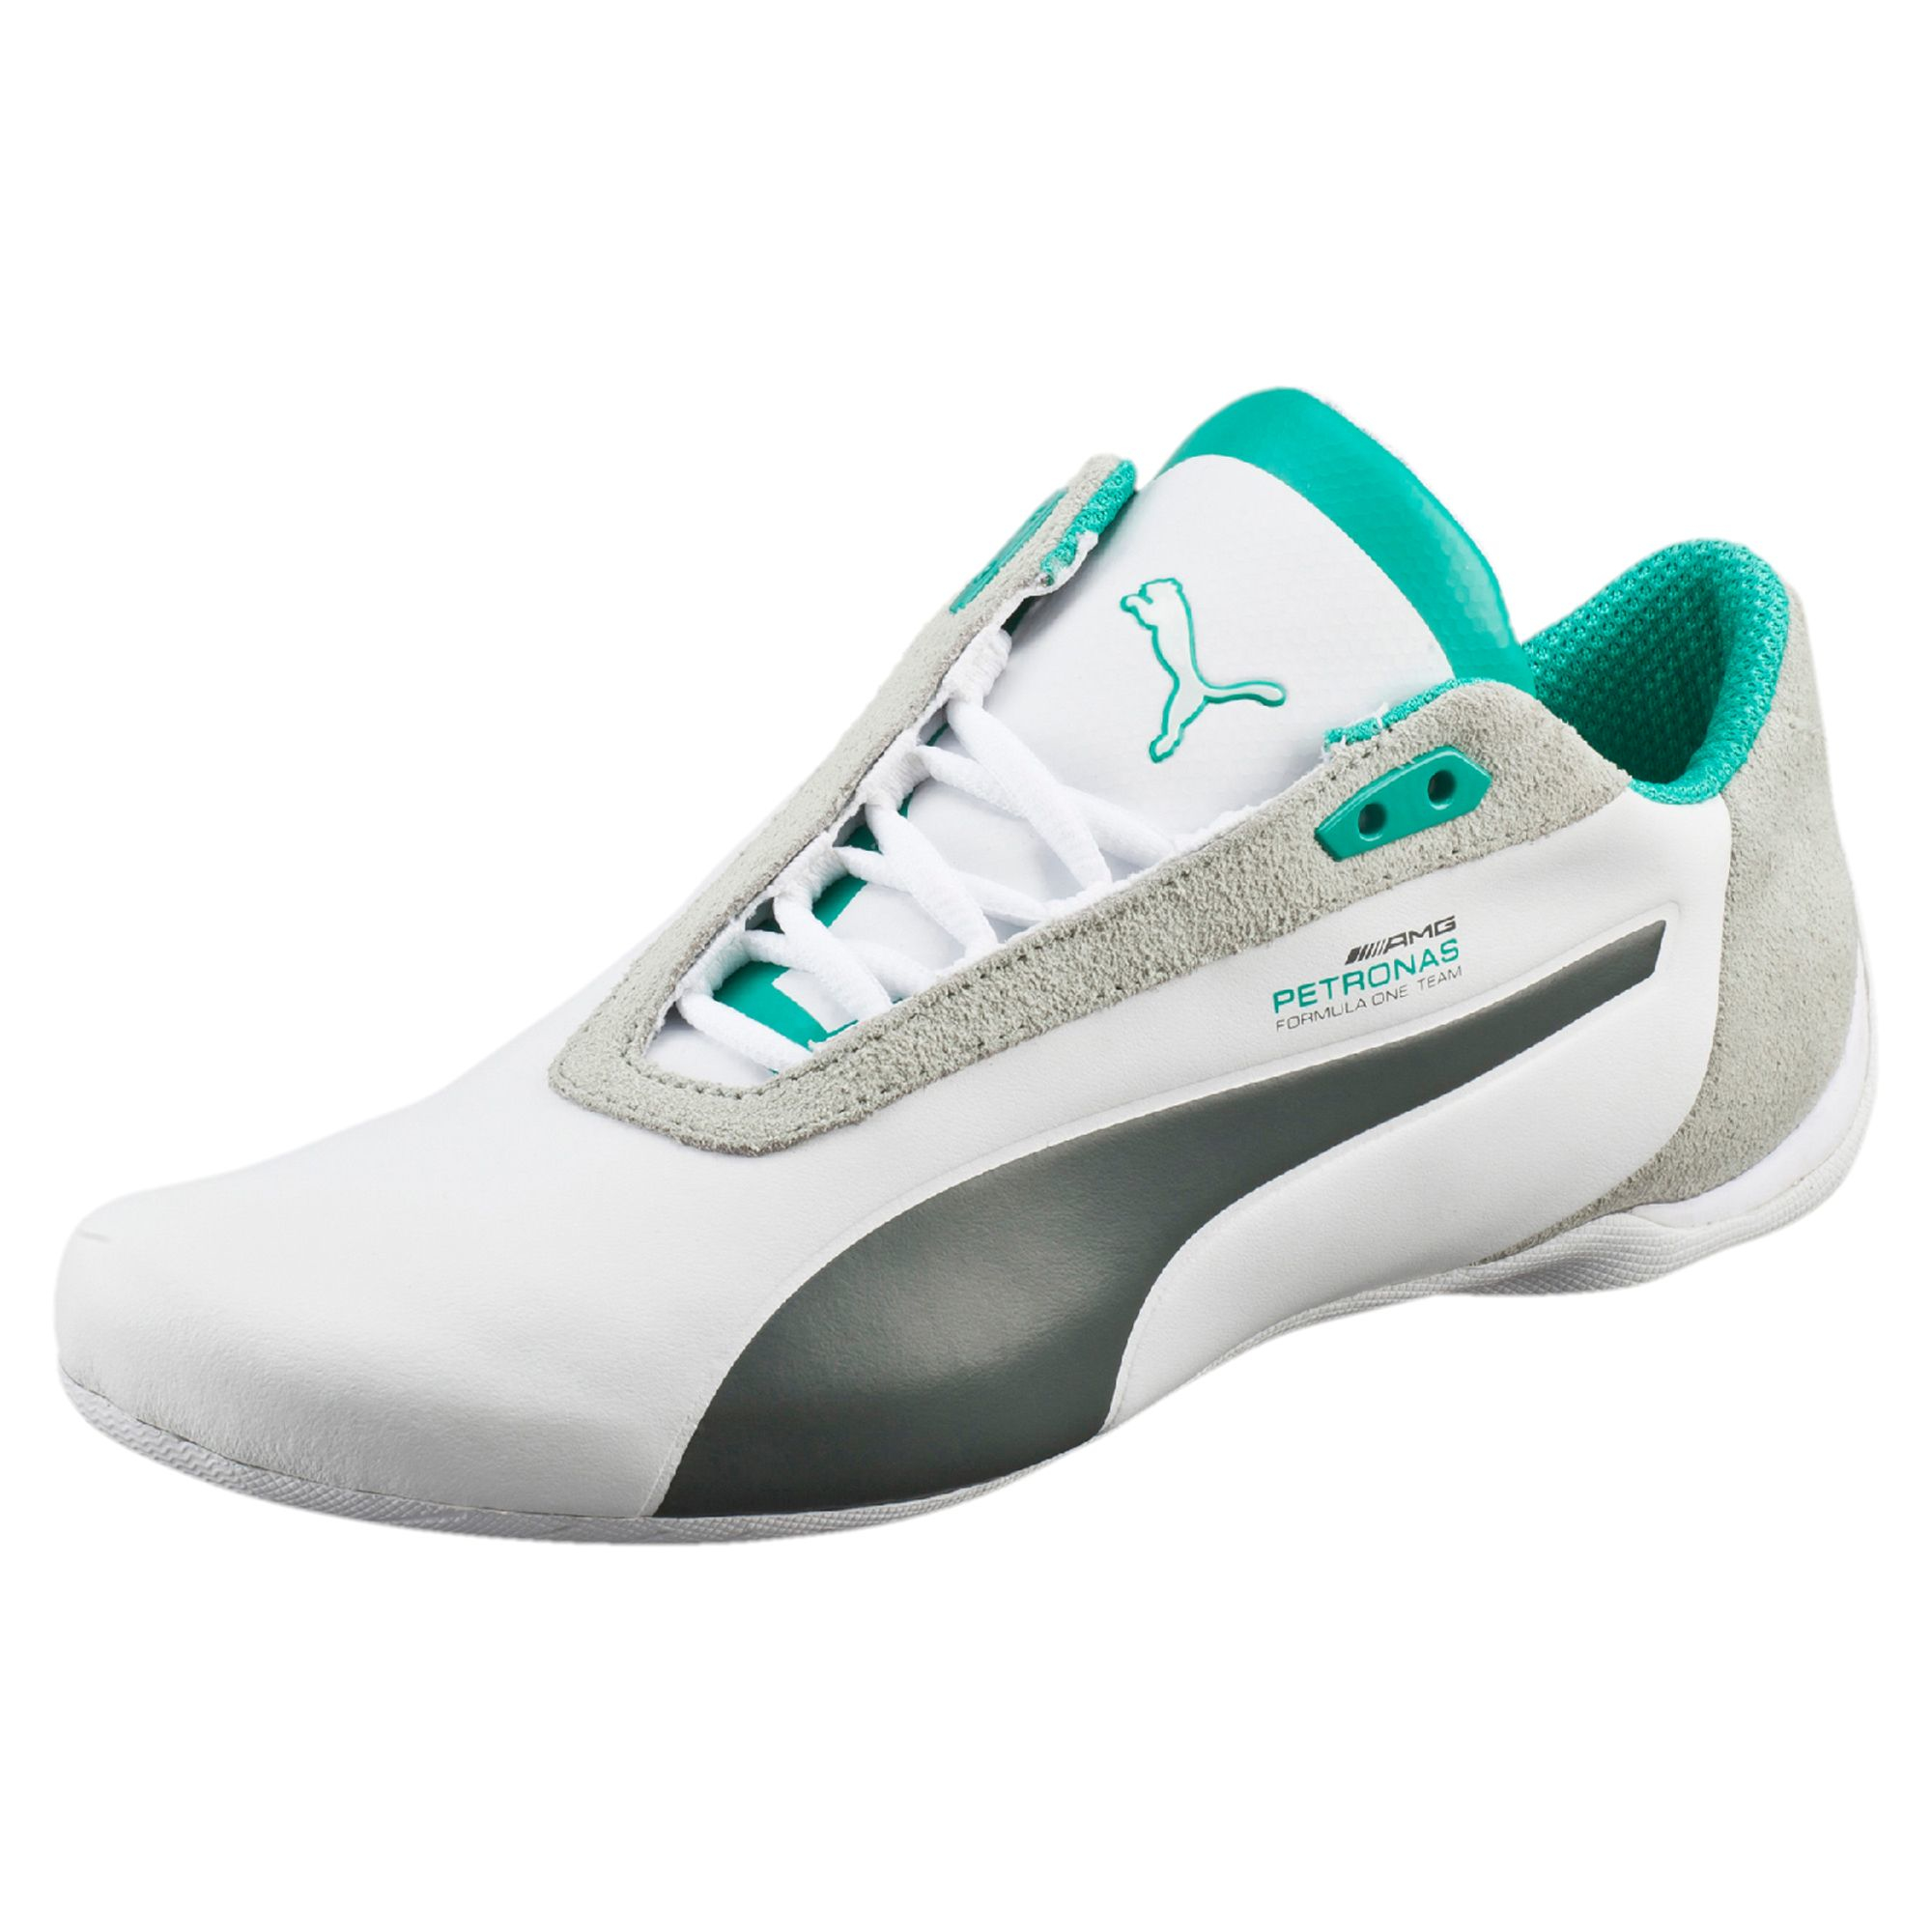 Lyst - PUMA Mercedes Future Cat S2 Men s Shoes in White for Men 945c3ee8f